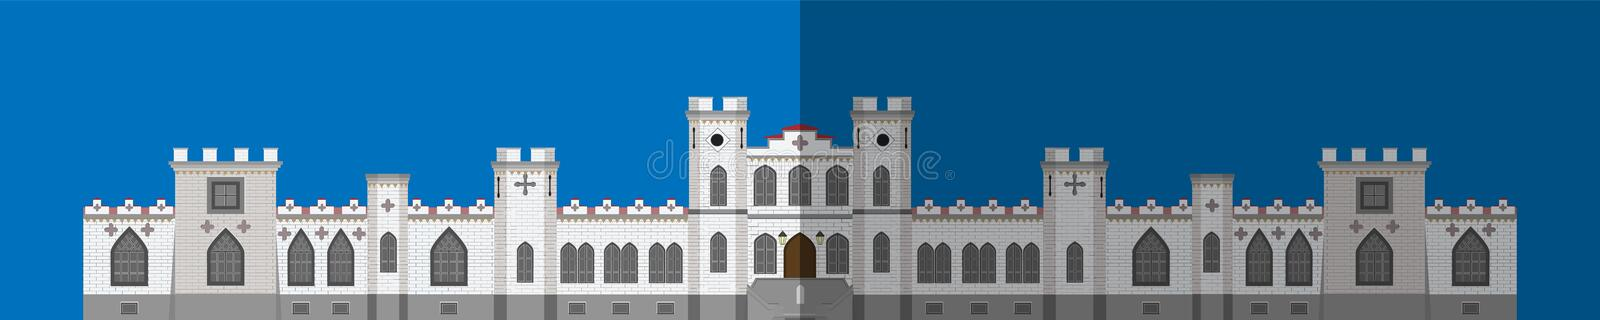 Palace icon. Flat image, front building stock illustration